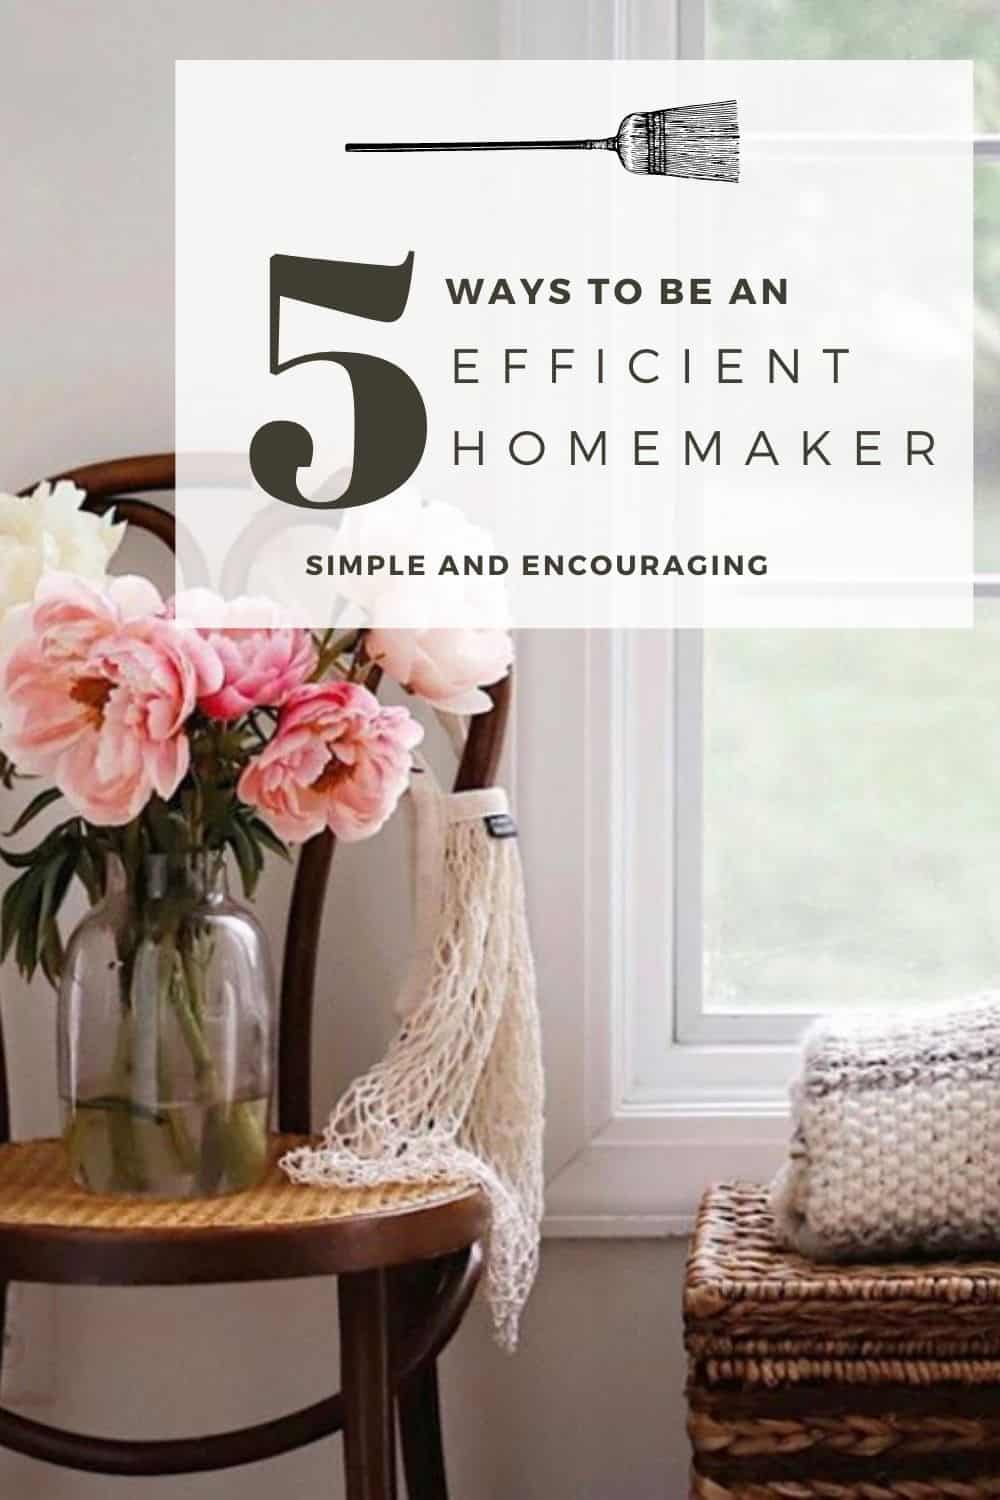 simple ways to be an efficient homemaker